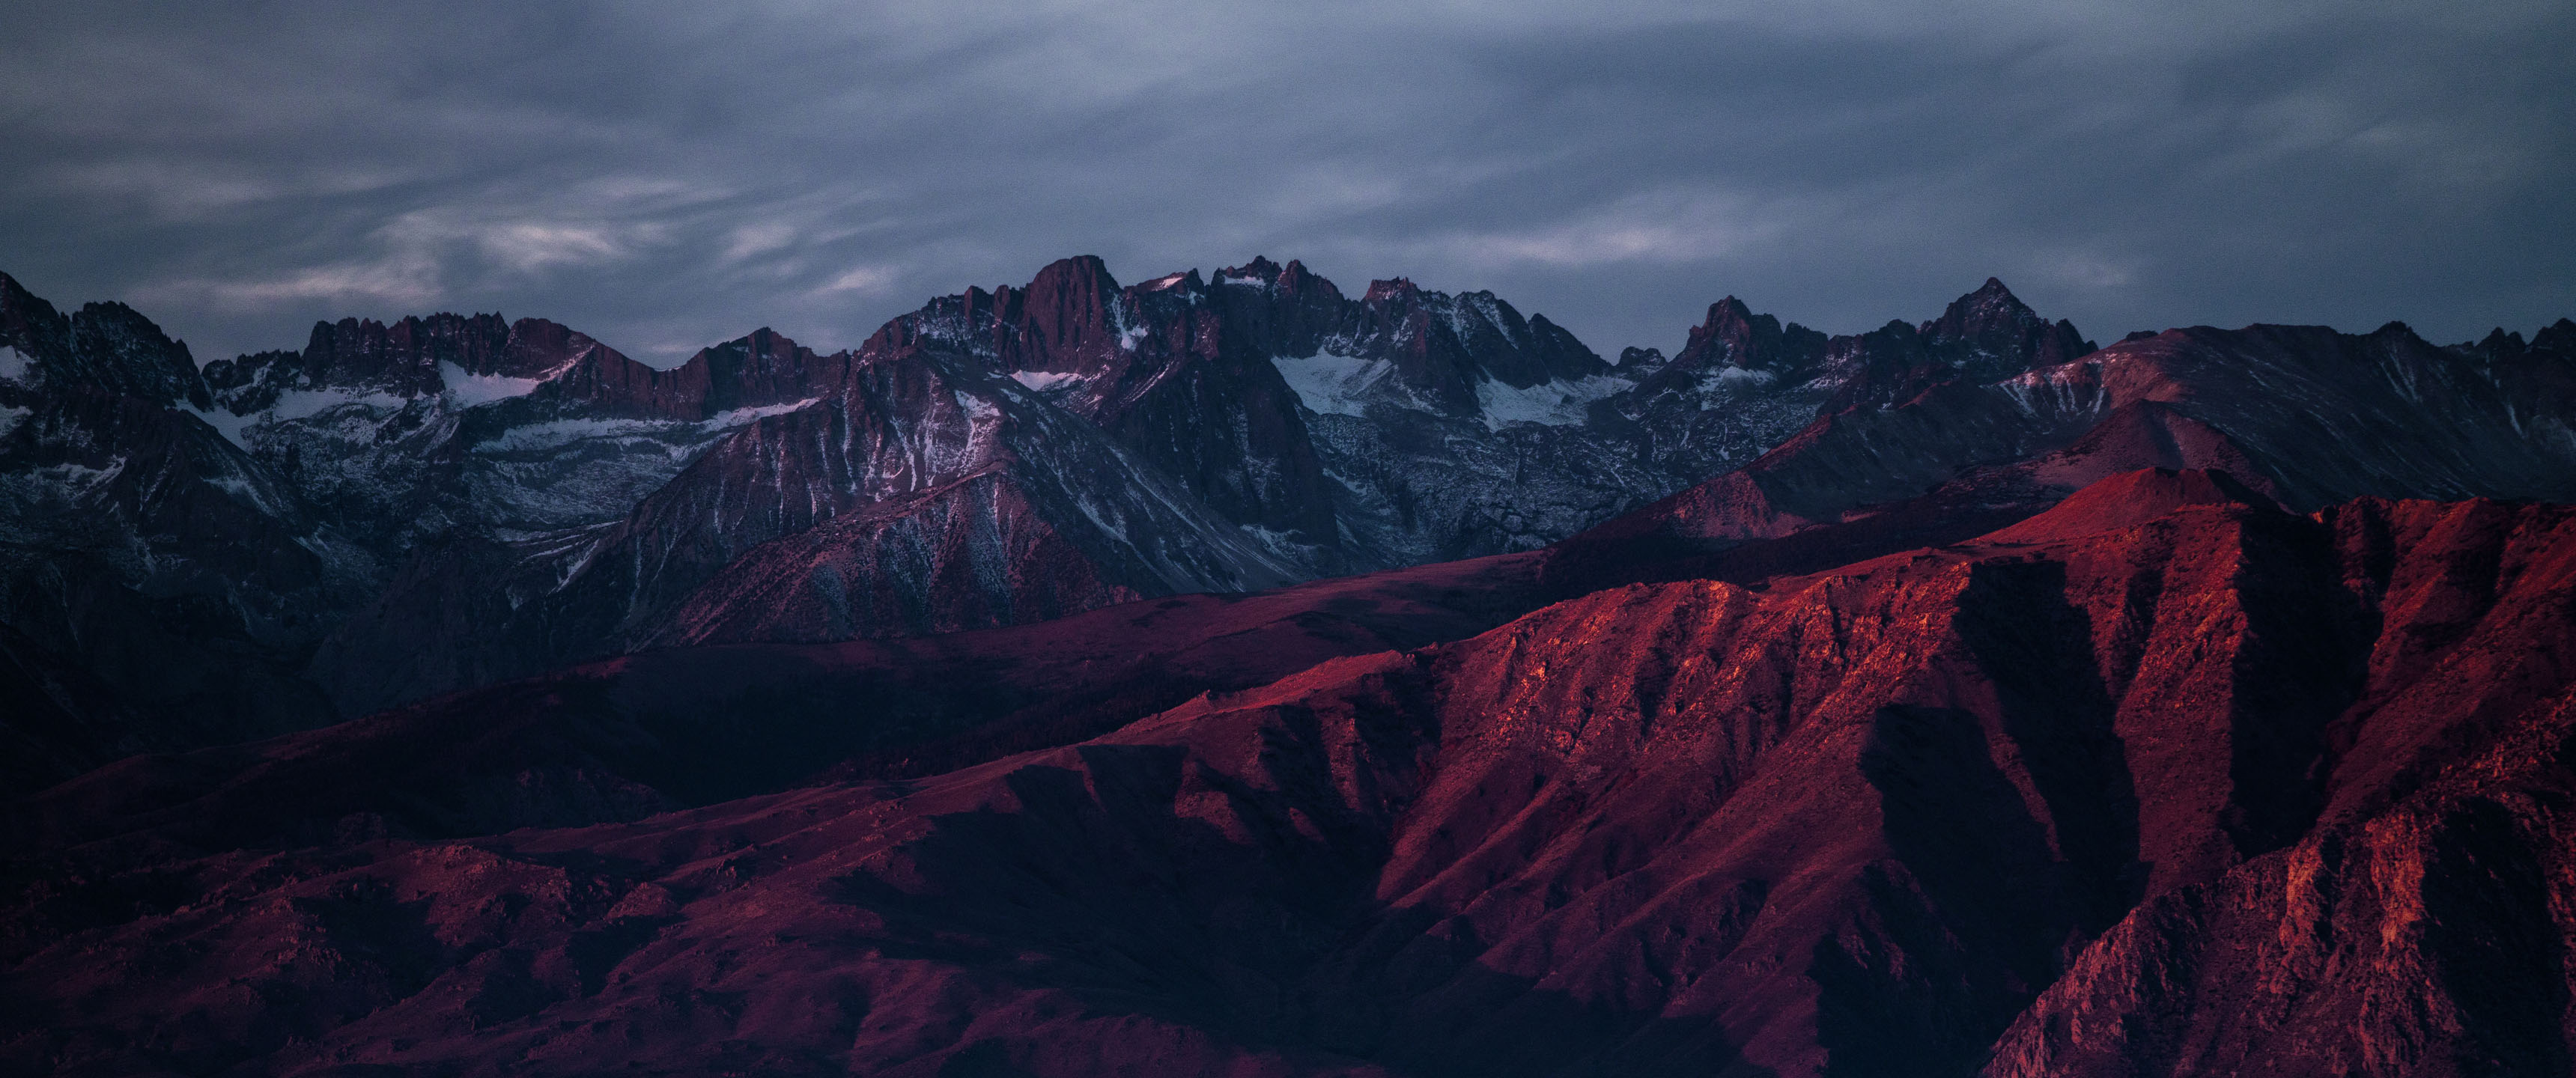 Red Valley 21:9 Wallpaper | Ultrawide Monitor 21:9 Wallpapers